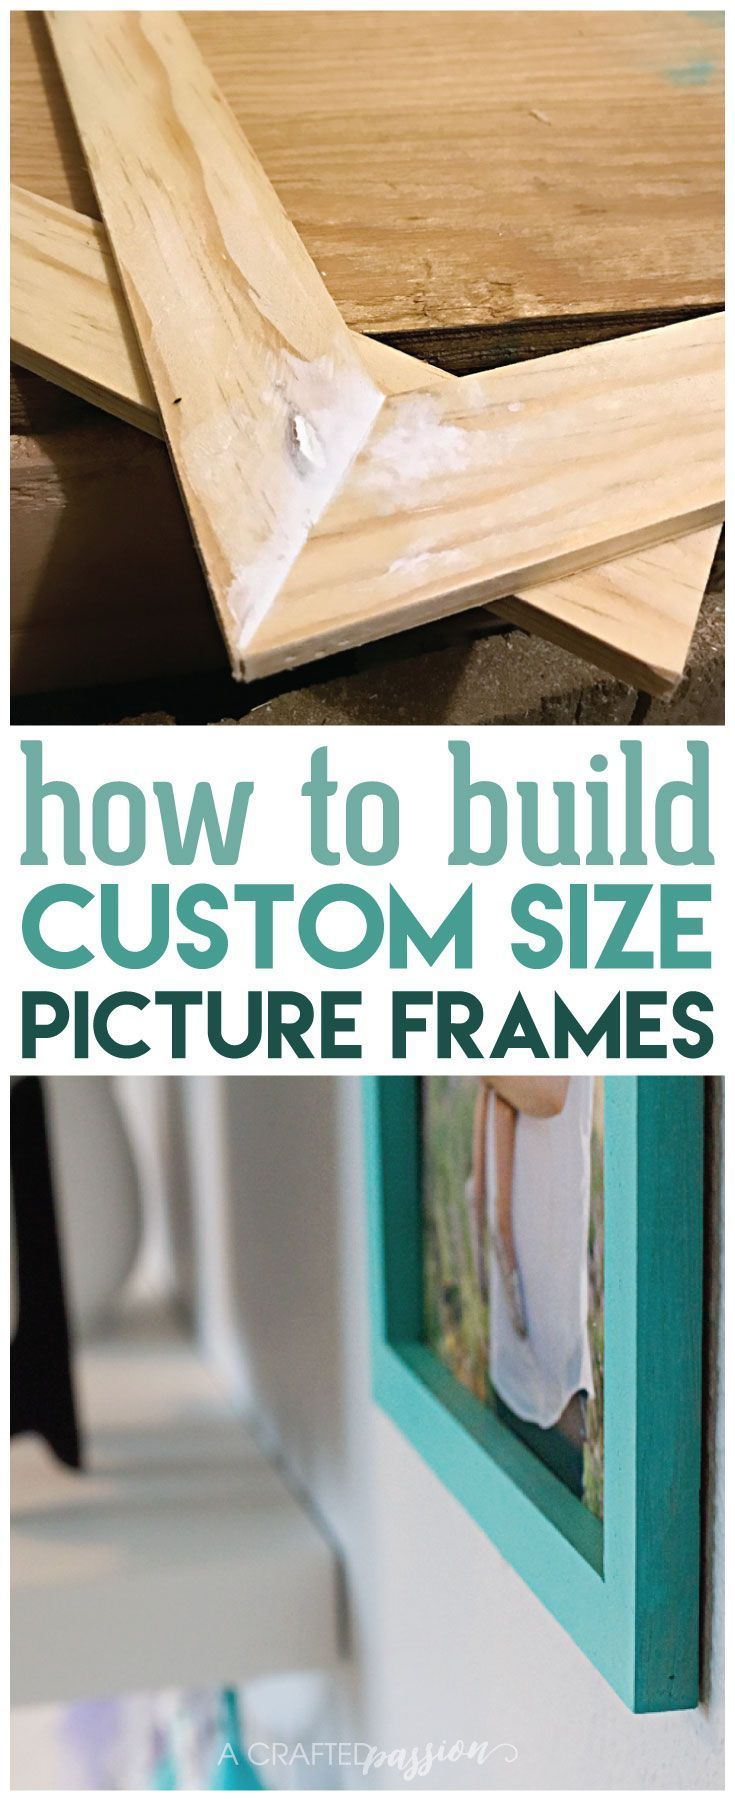 How to Build an Easy Custom Size Picture Frame // Can't find the perfect sized picture frame? Learn how to make your own in a few simple steps with this easy tutorial!